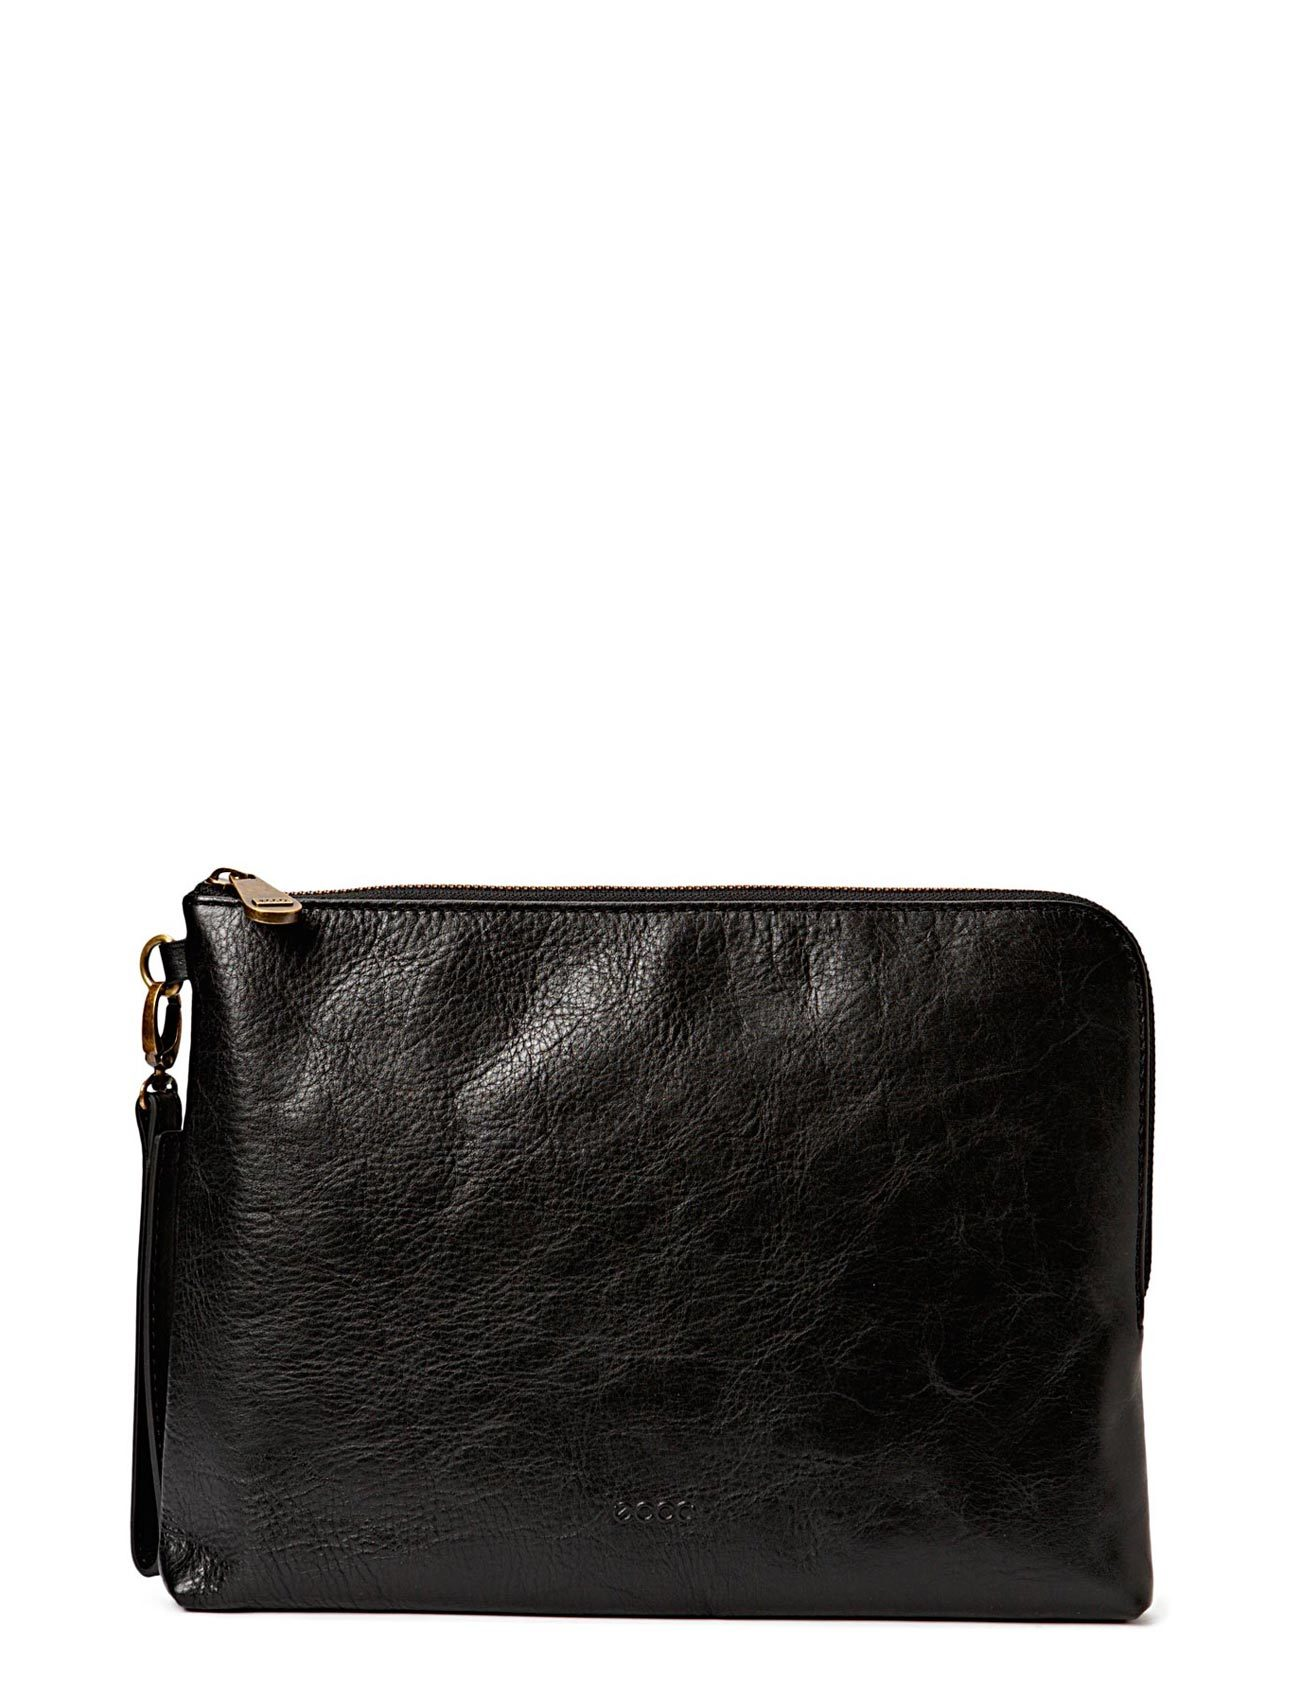 Walk In Style - Ipad Pouch